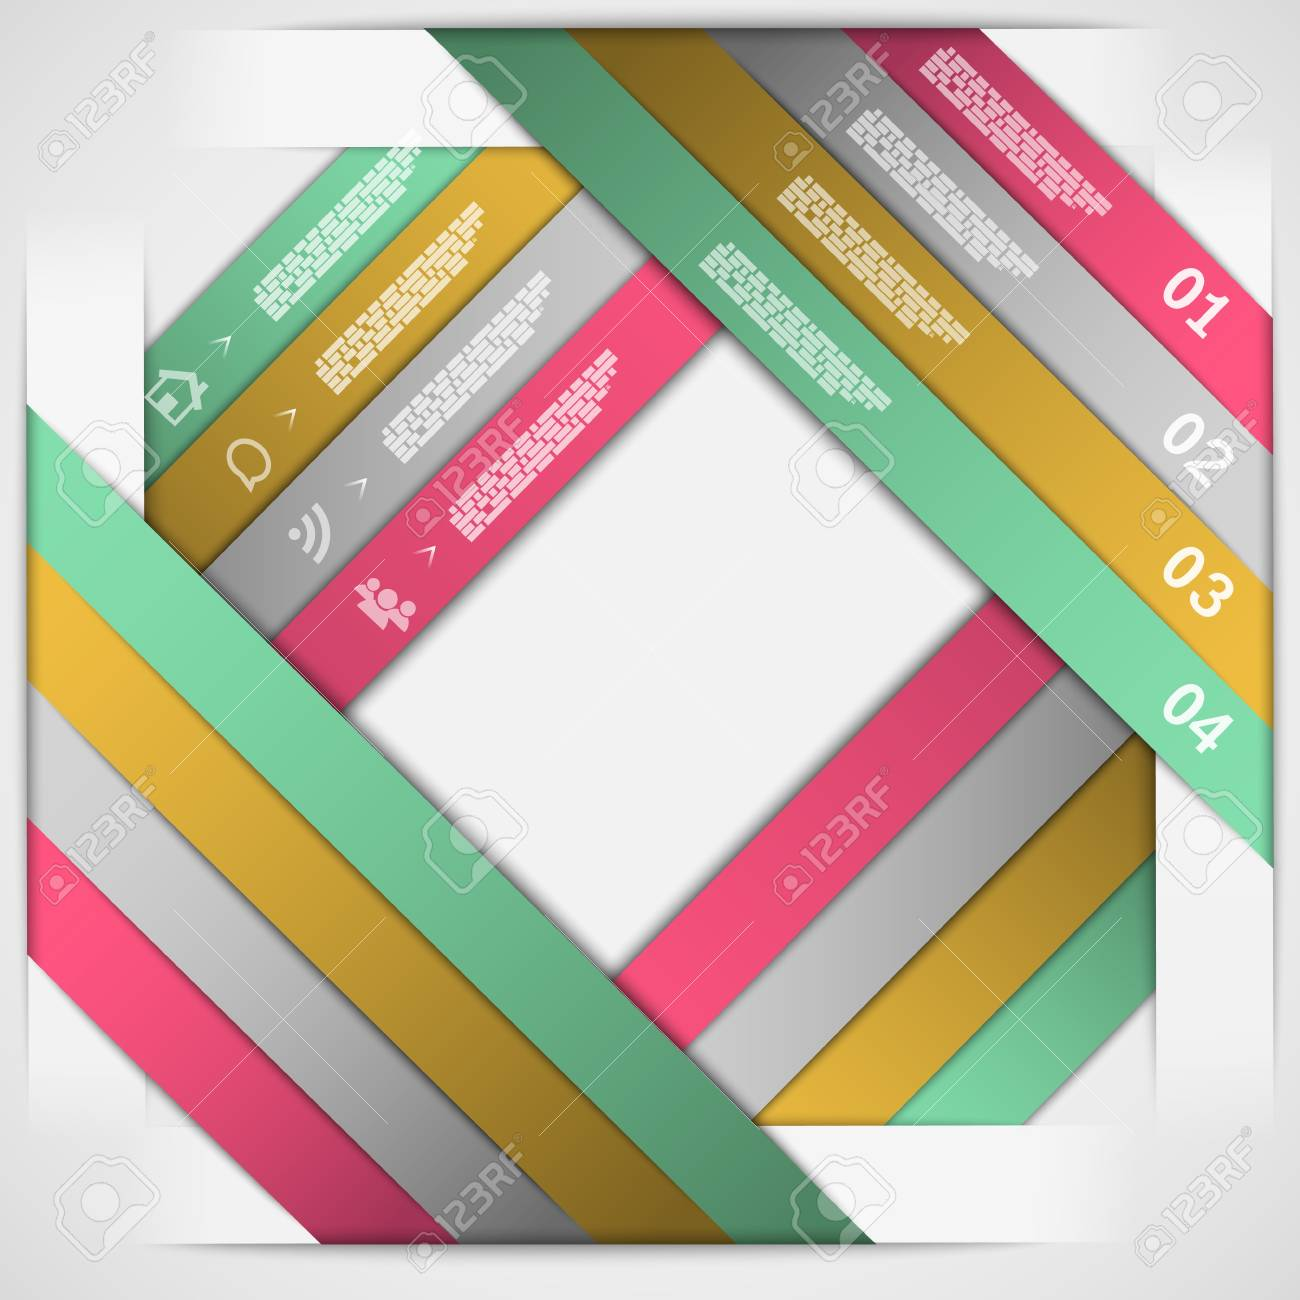 Paper strips choice template  illustration Stock Vector - 20227724